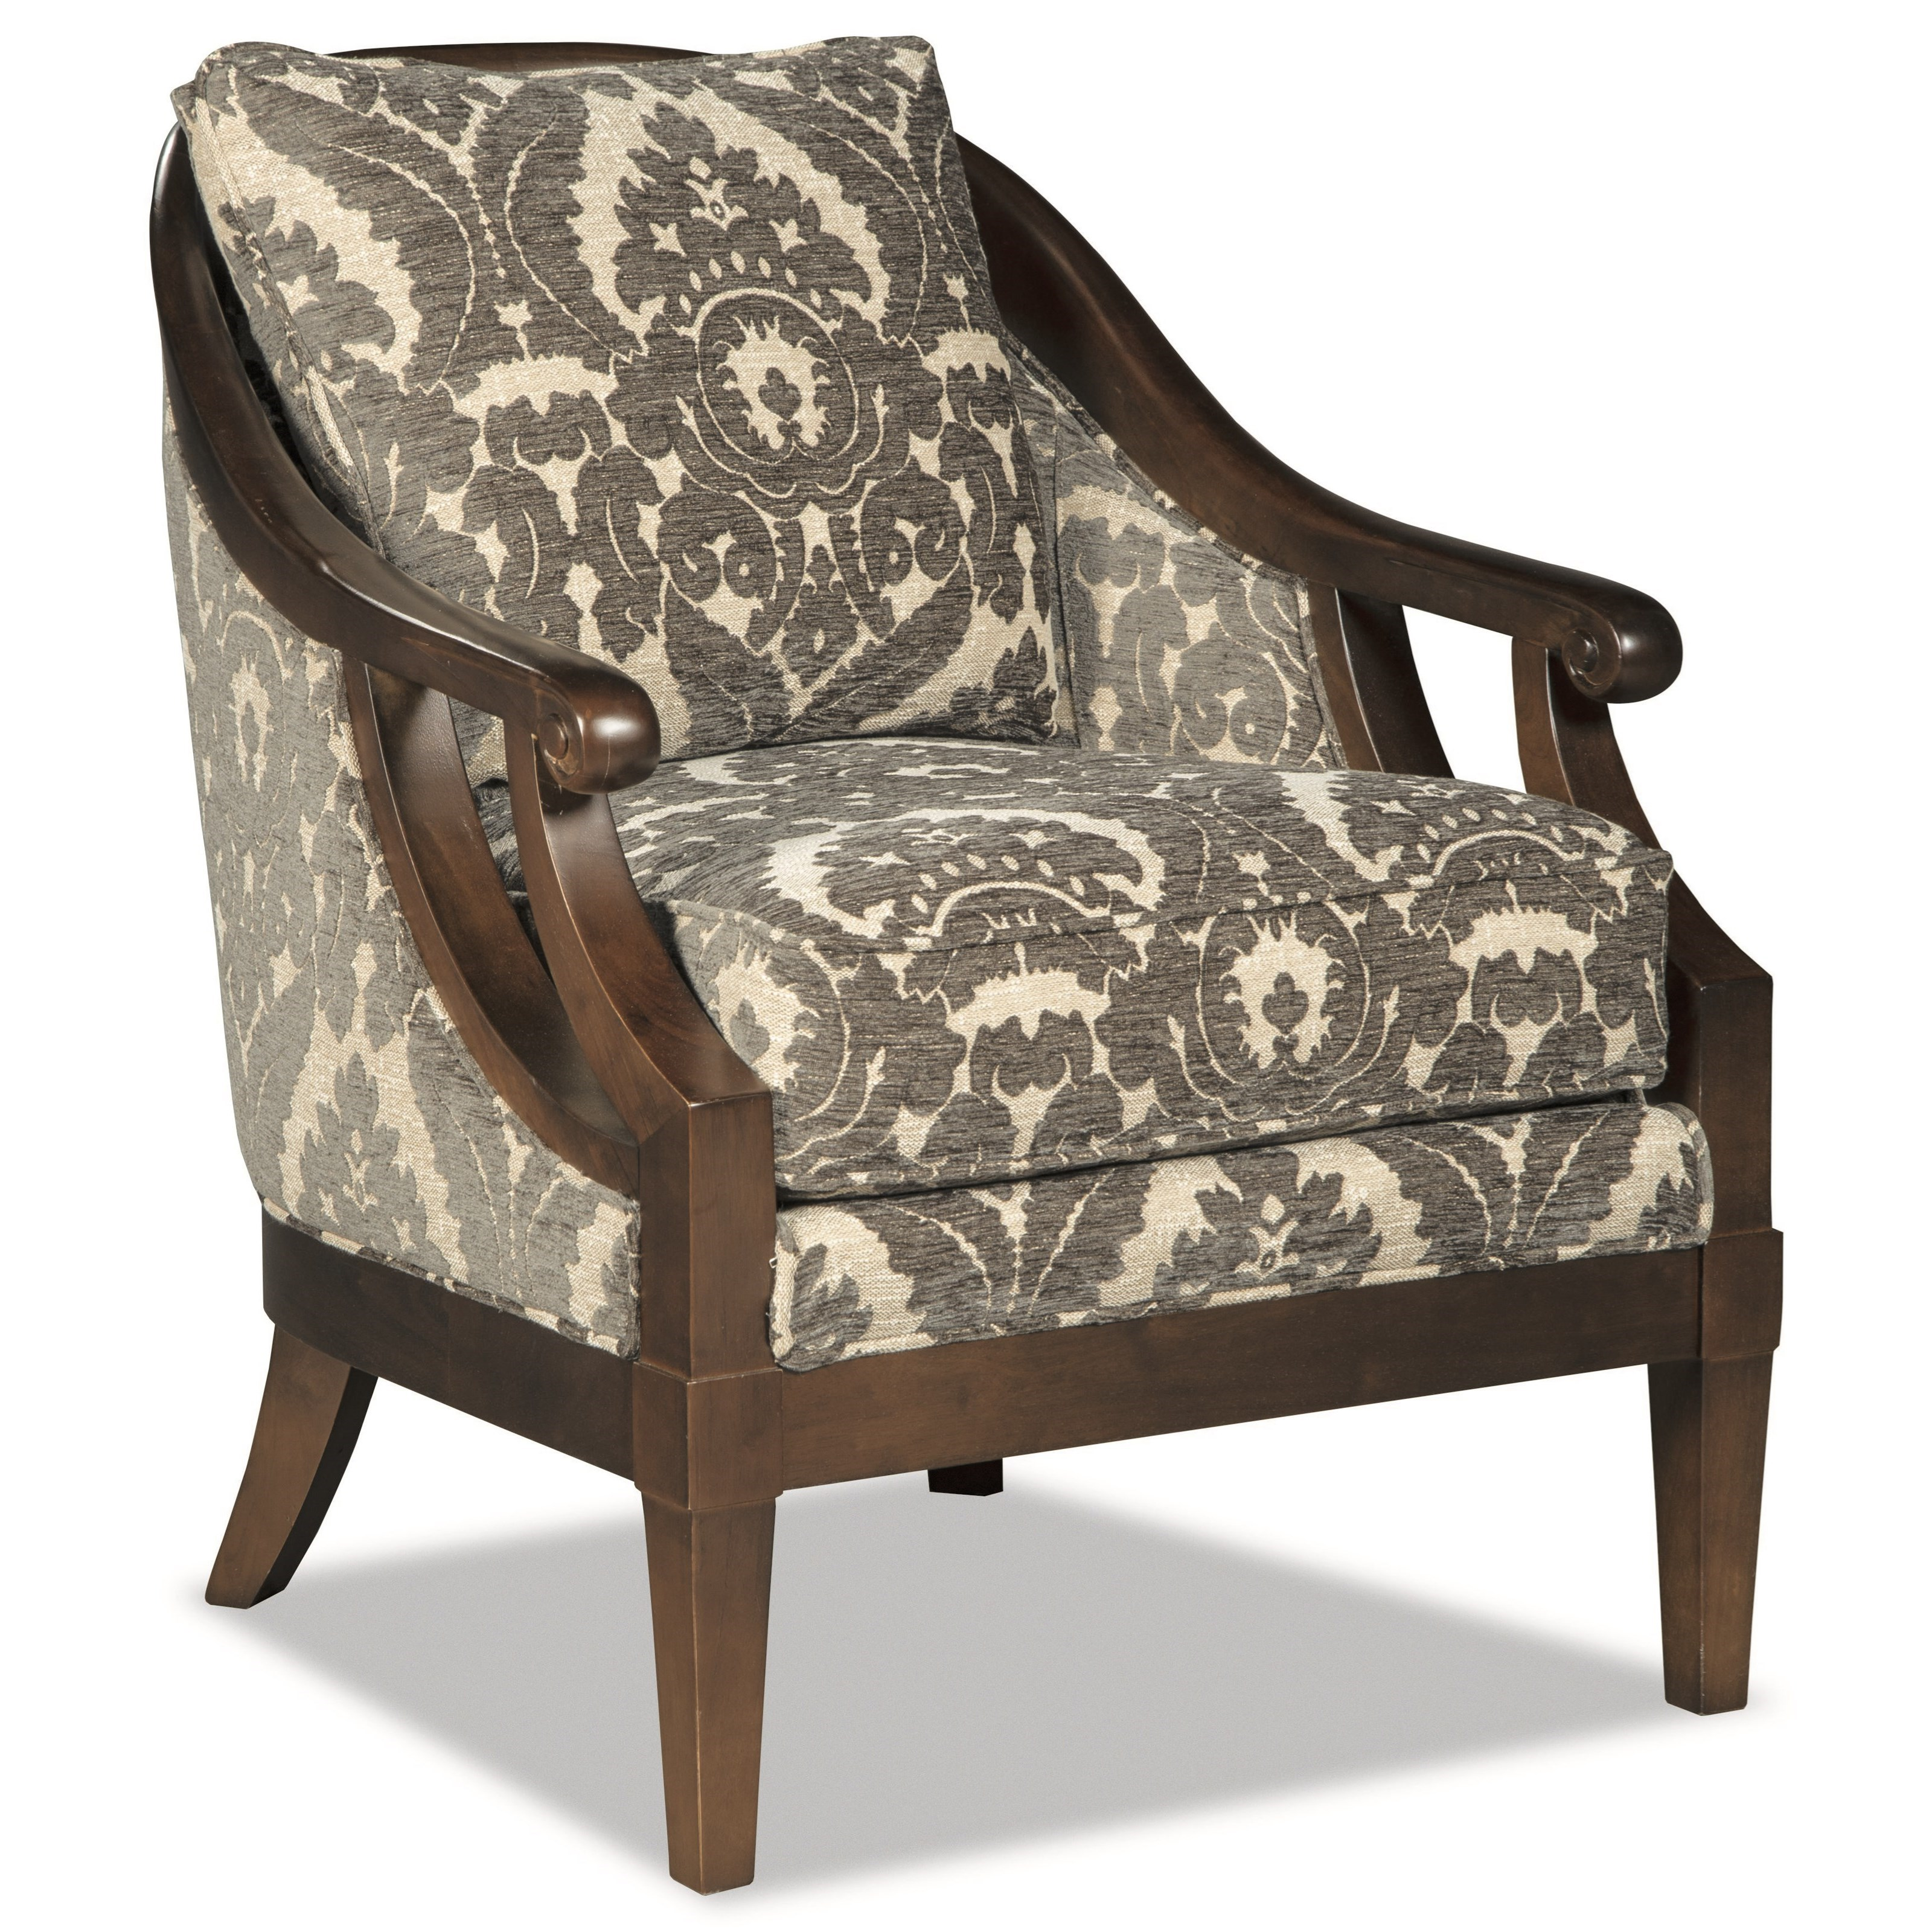 Traditional WoodFramed Accent Chair with Scroll Arms by